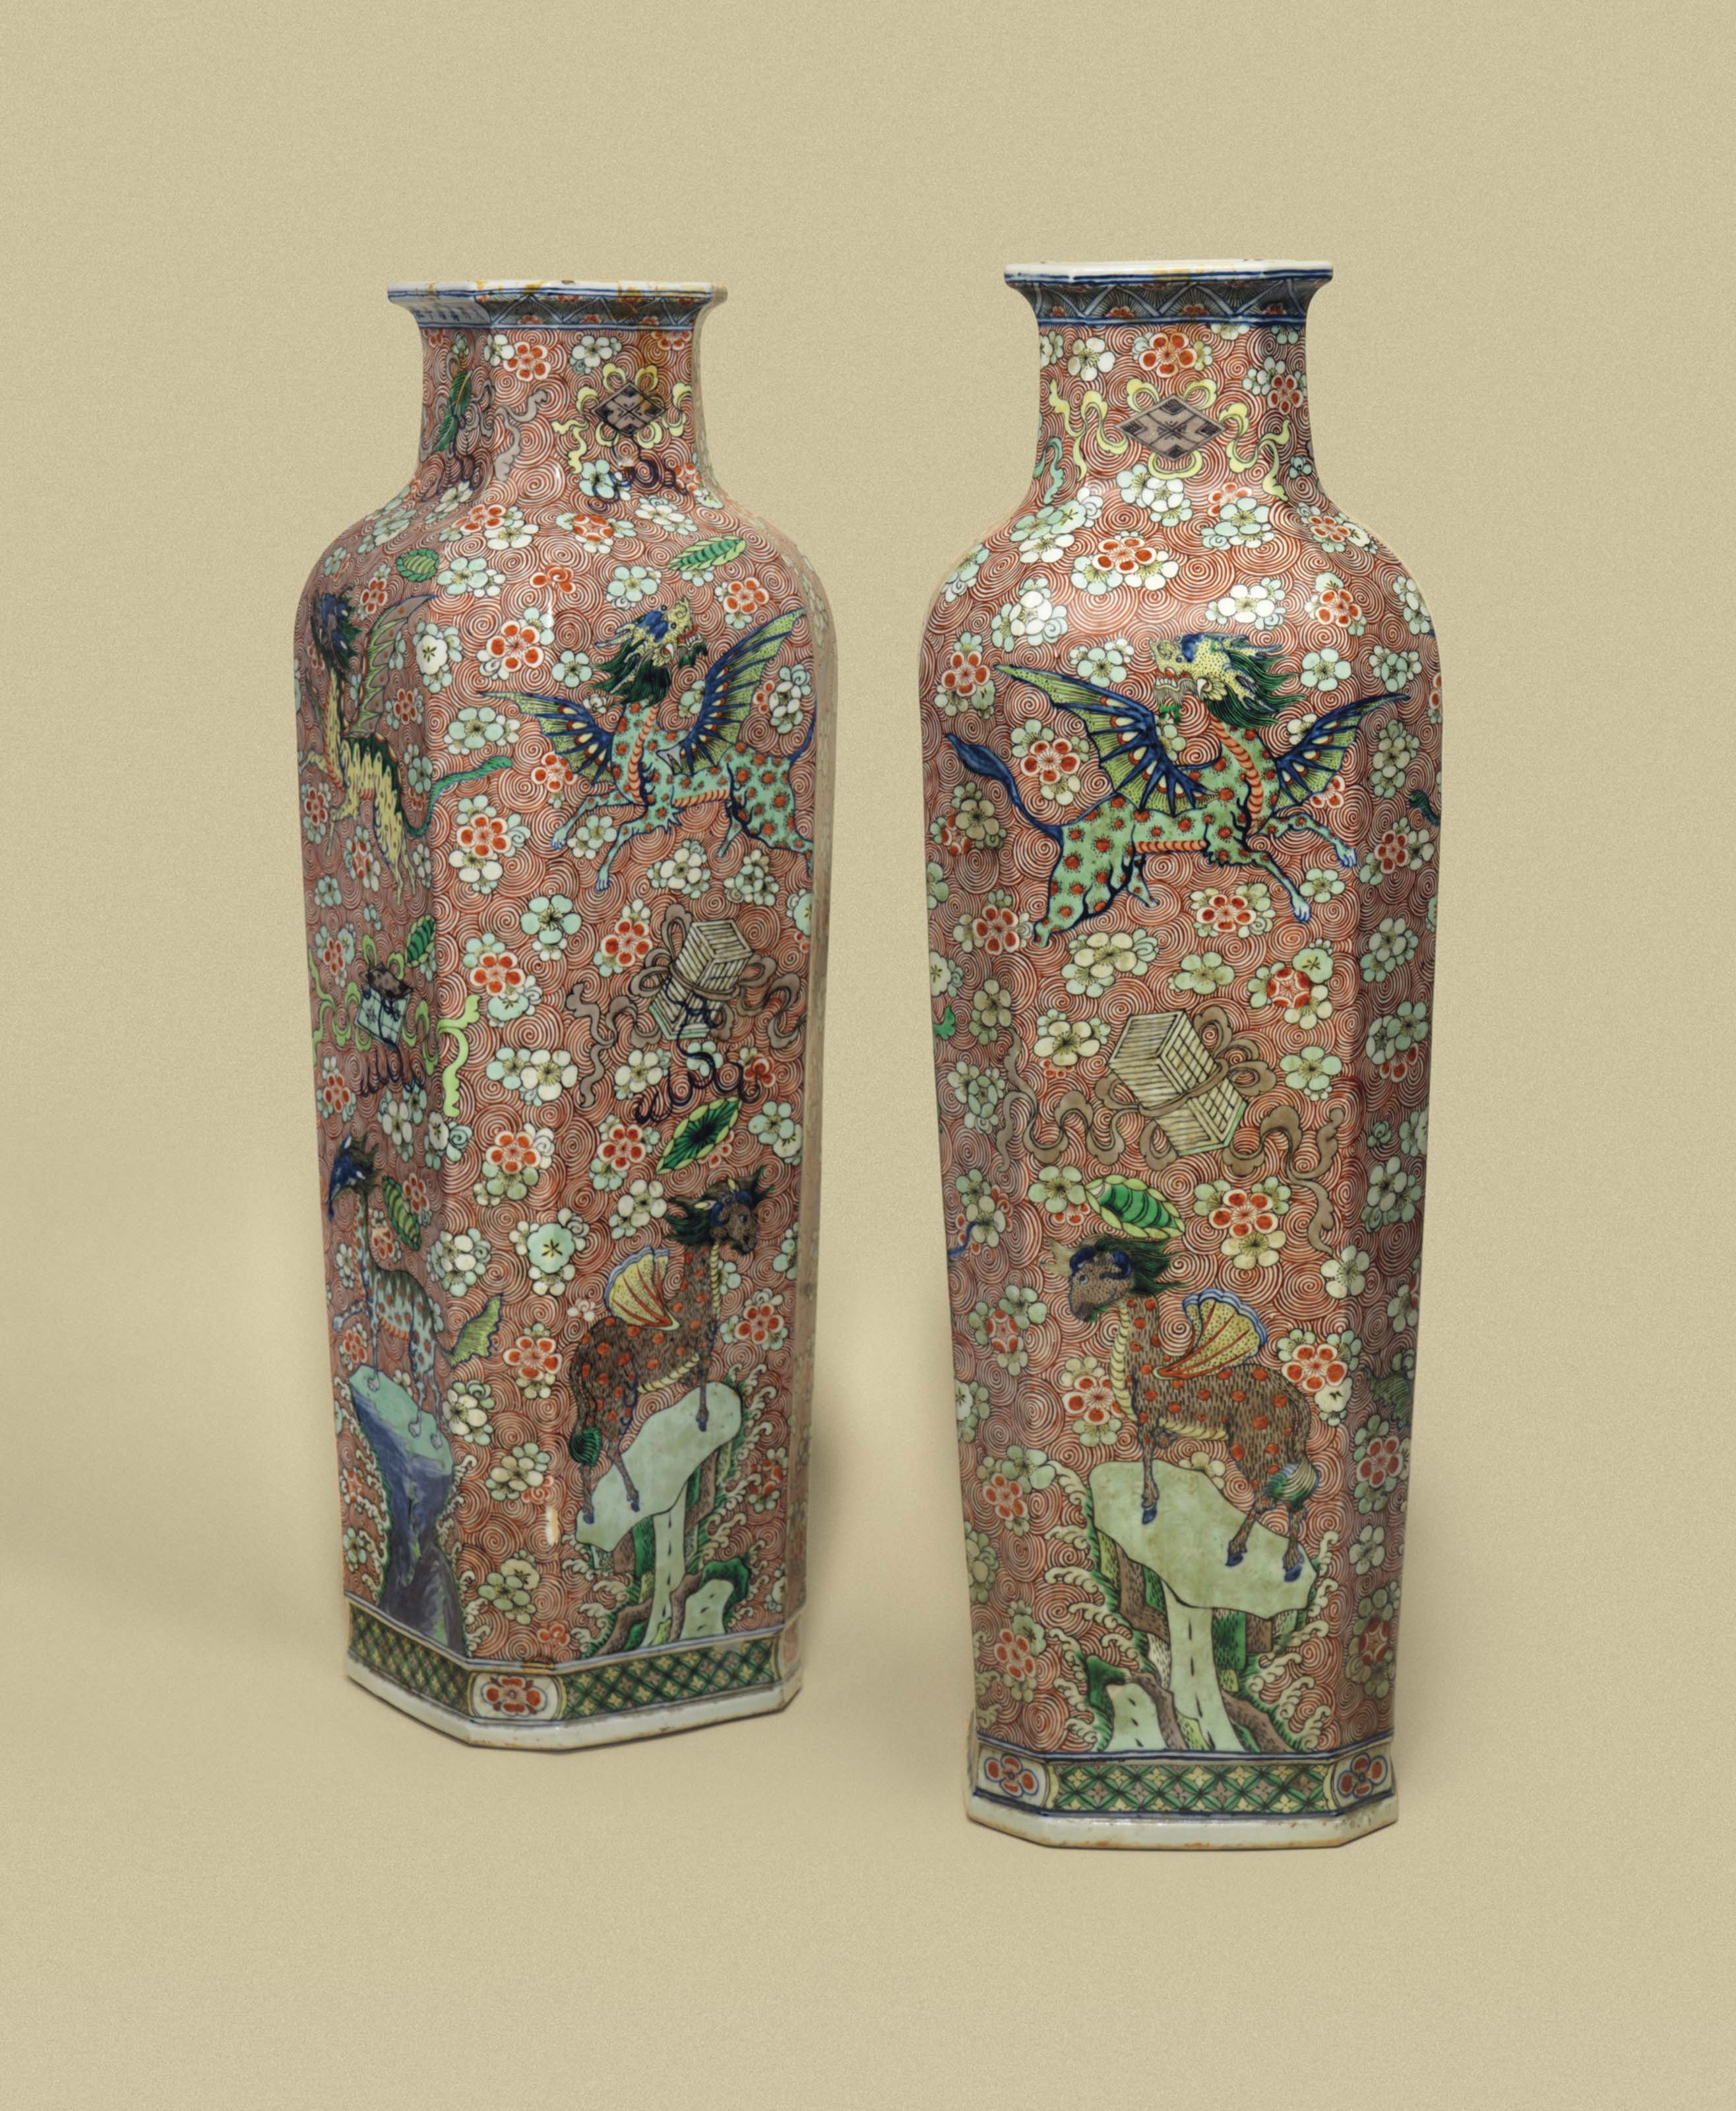 A PAIR OF LARGE SQUARE-SECTION WUCAI VASES